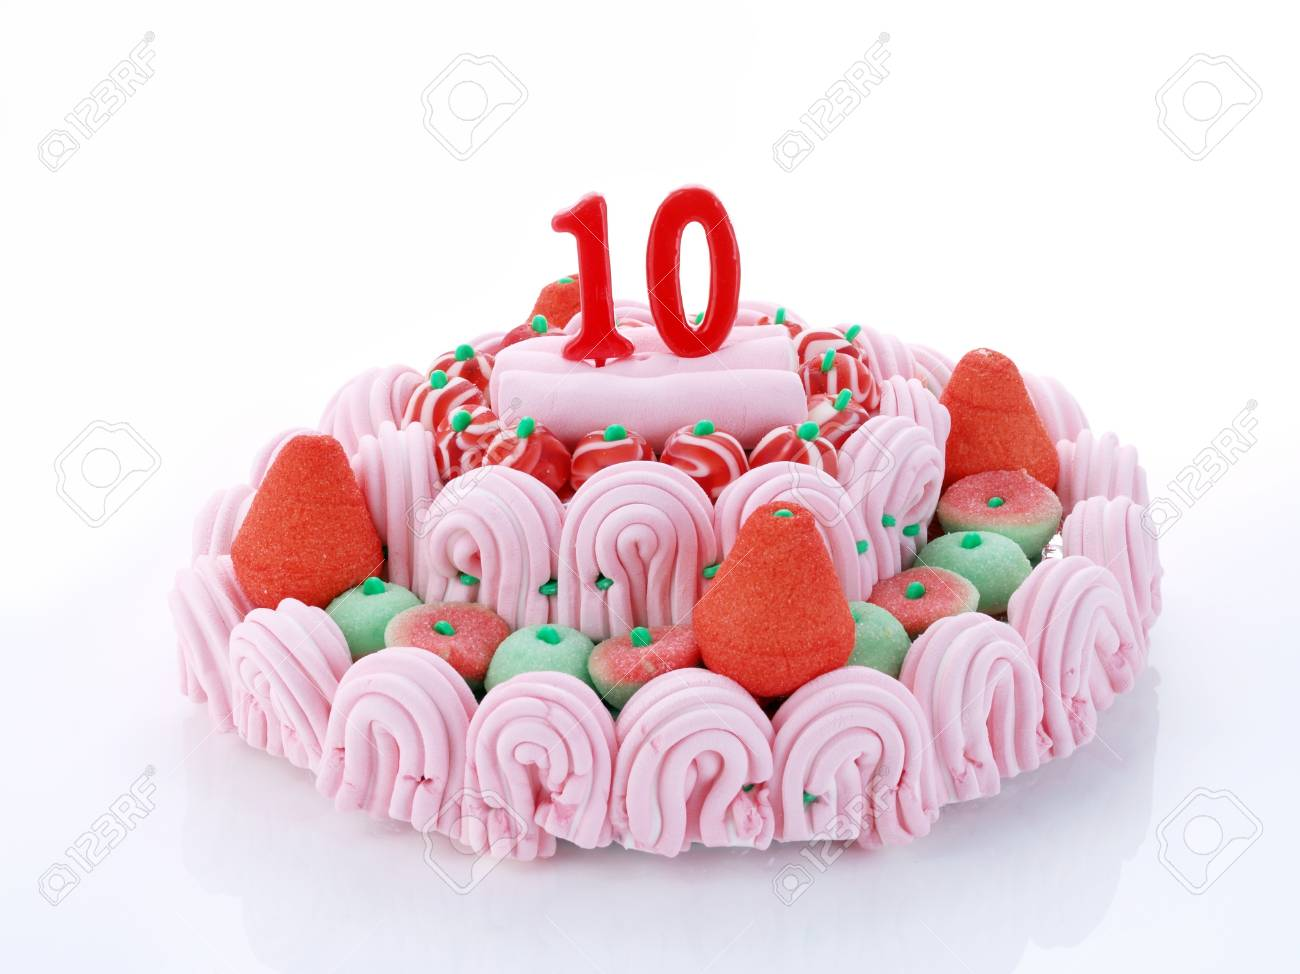 Birthday Cake With Red Candles Showing Nr 10 Stock Photo